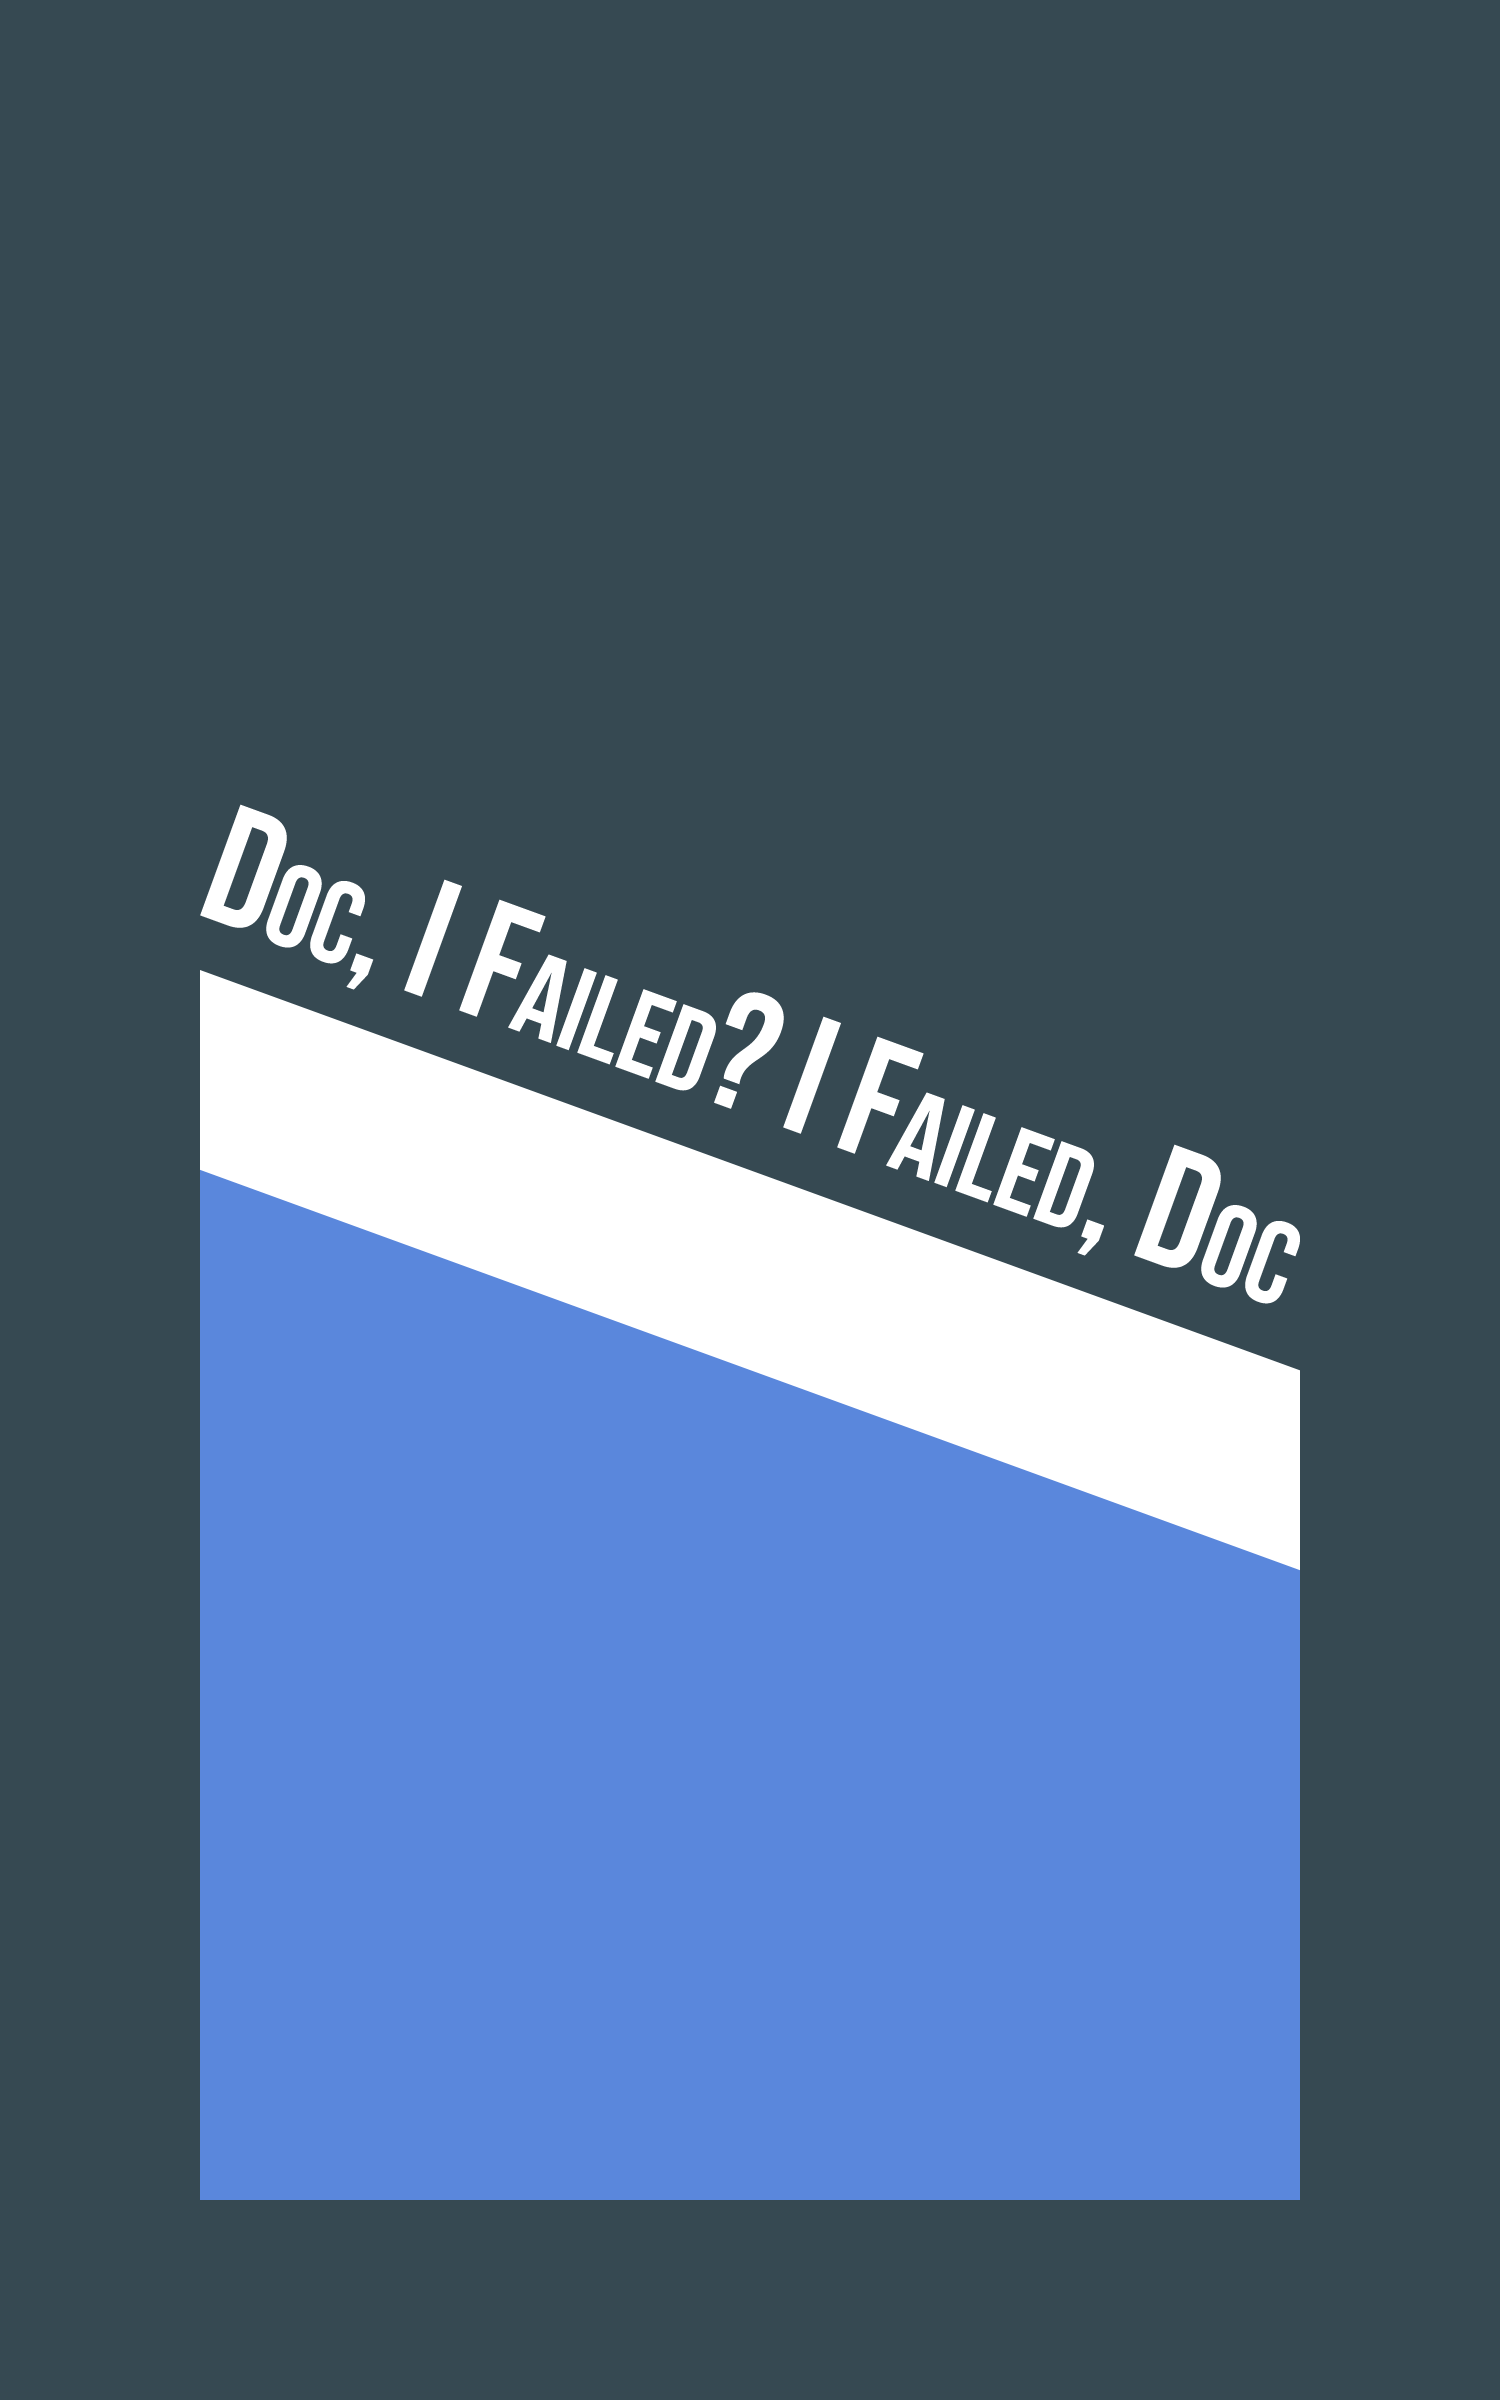 Doc, I Failed? I Failed, Doc